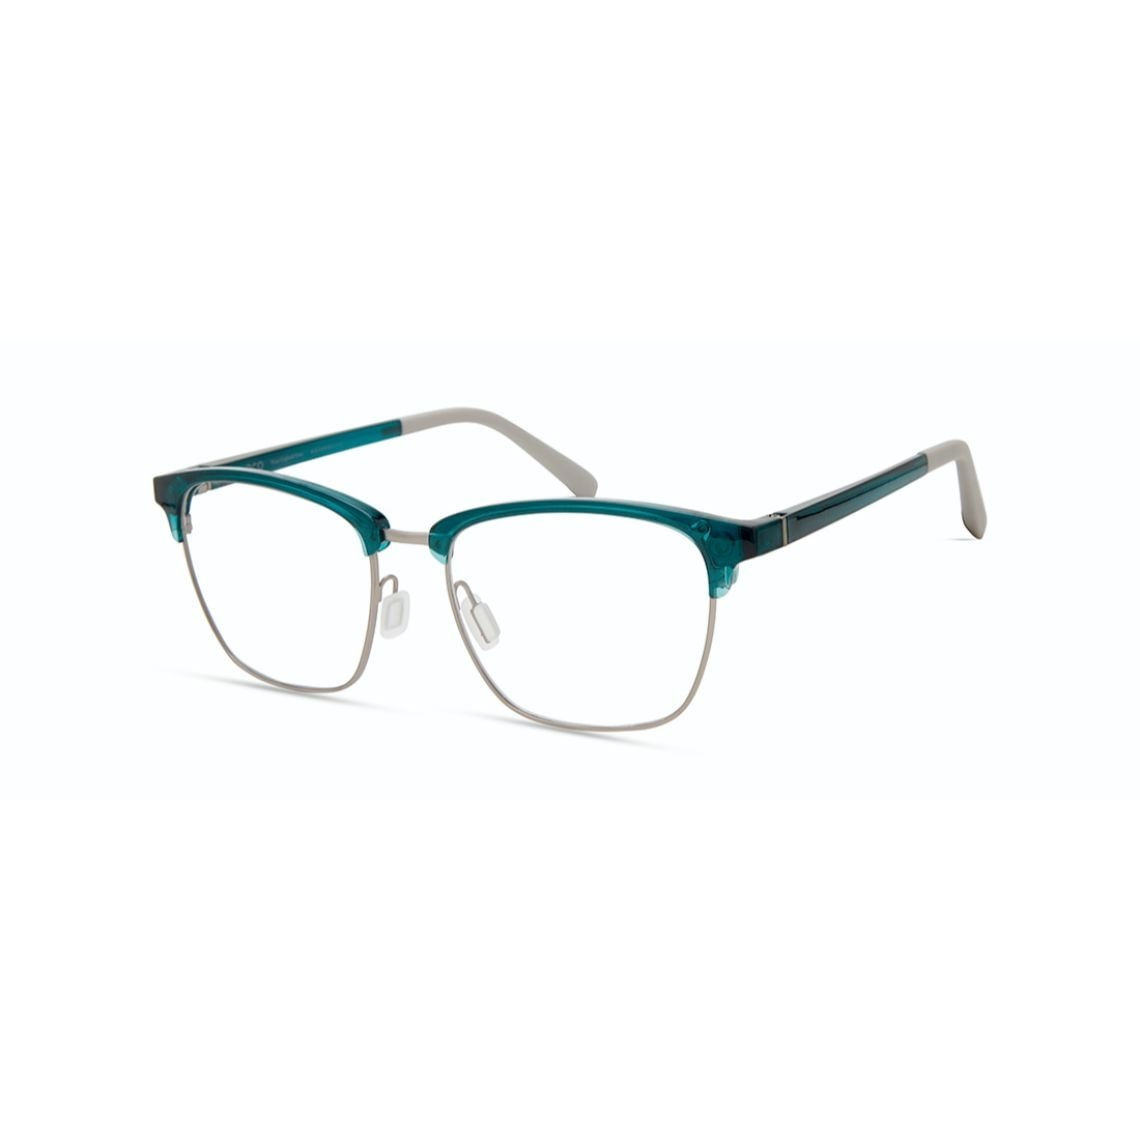 Eco Russel Teal 5117